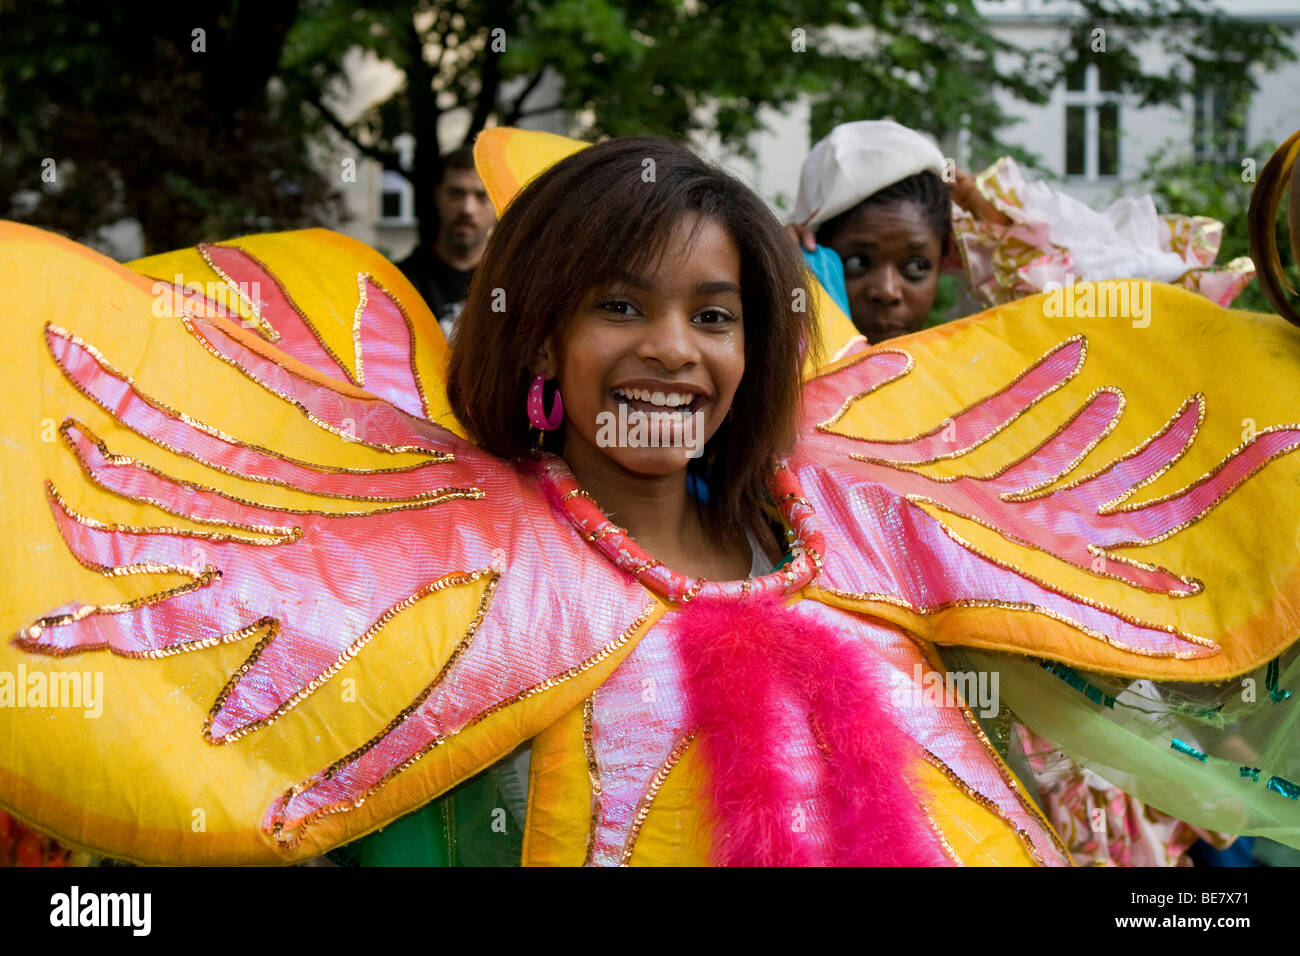 Young woman, Amasonia group, Carnival of Cultures 2009, Berlin, Germany, Europe - Stock Image